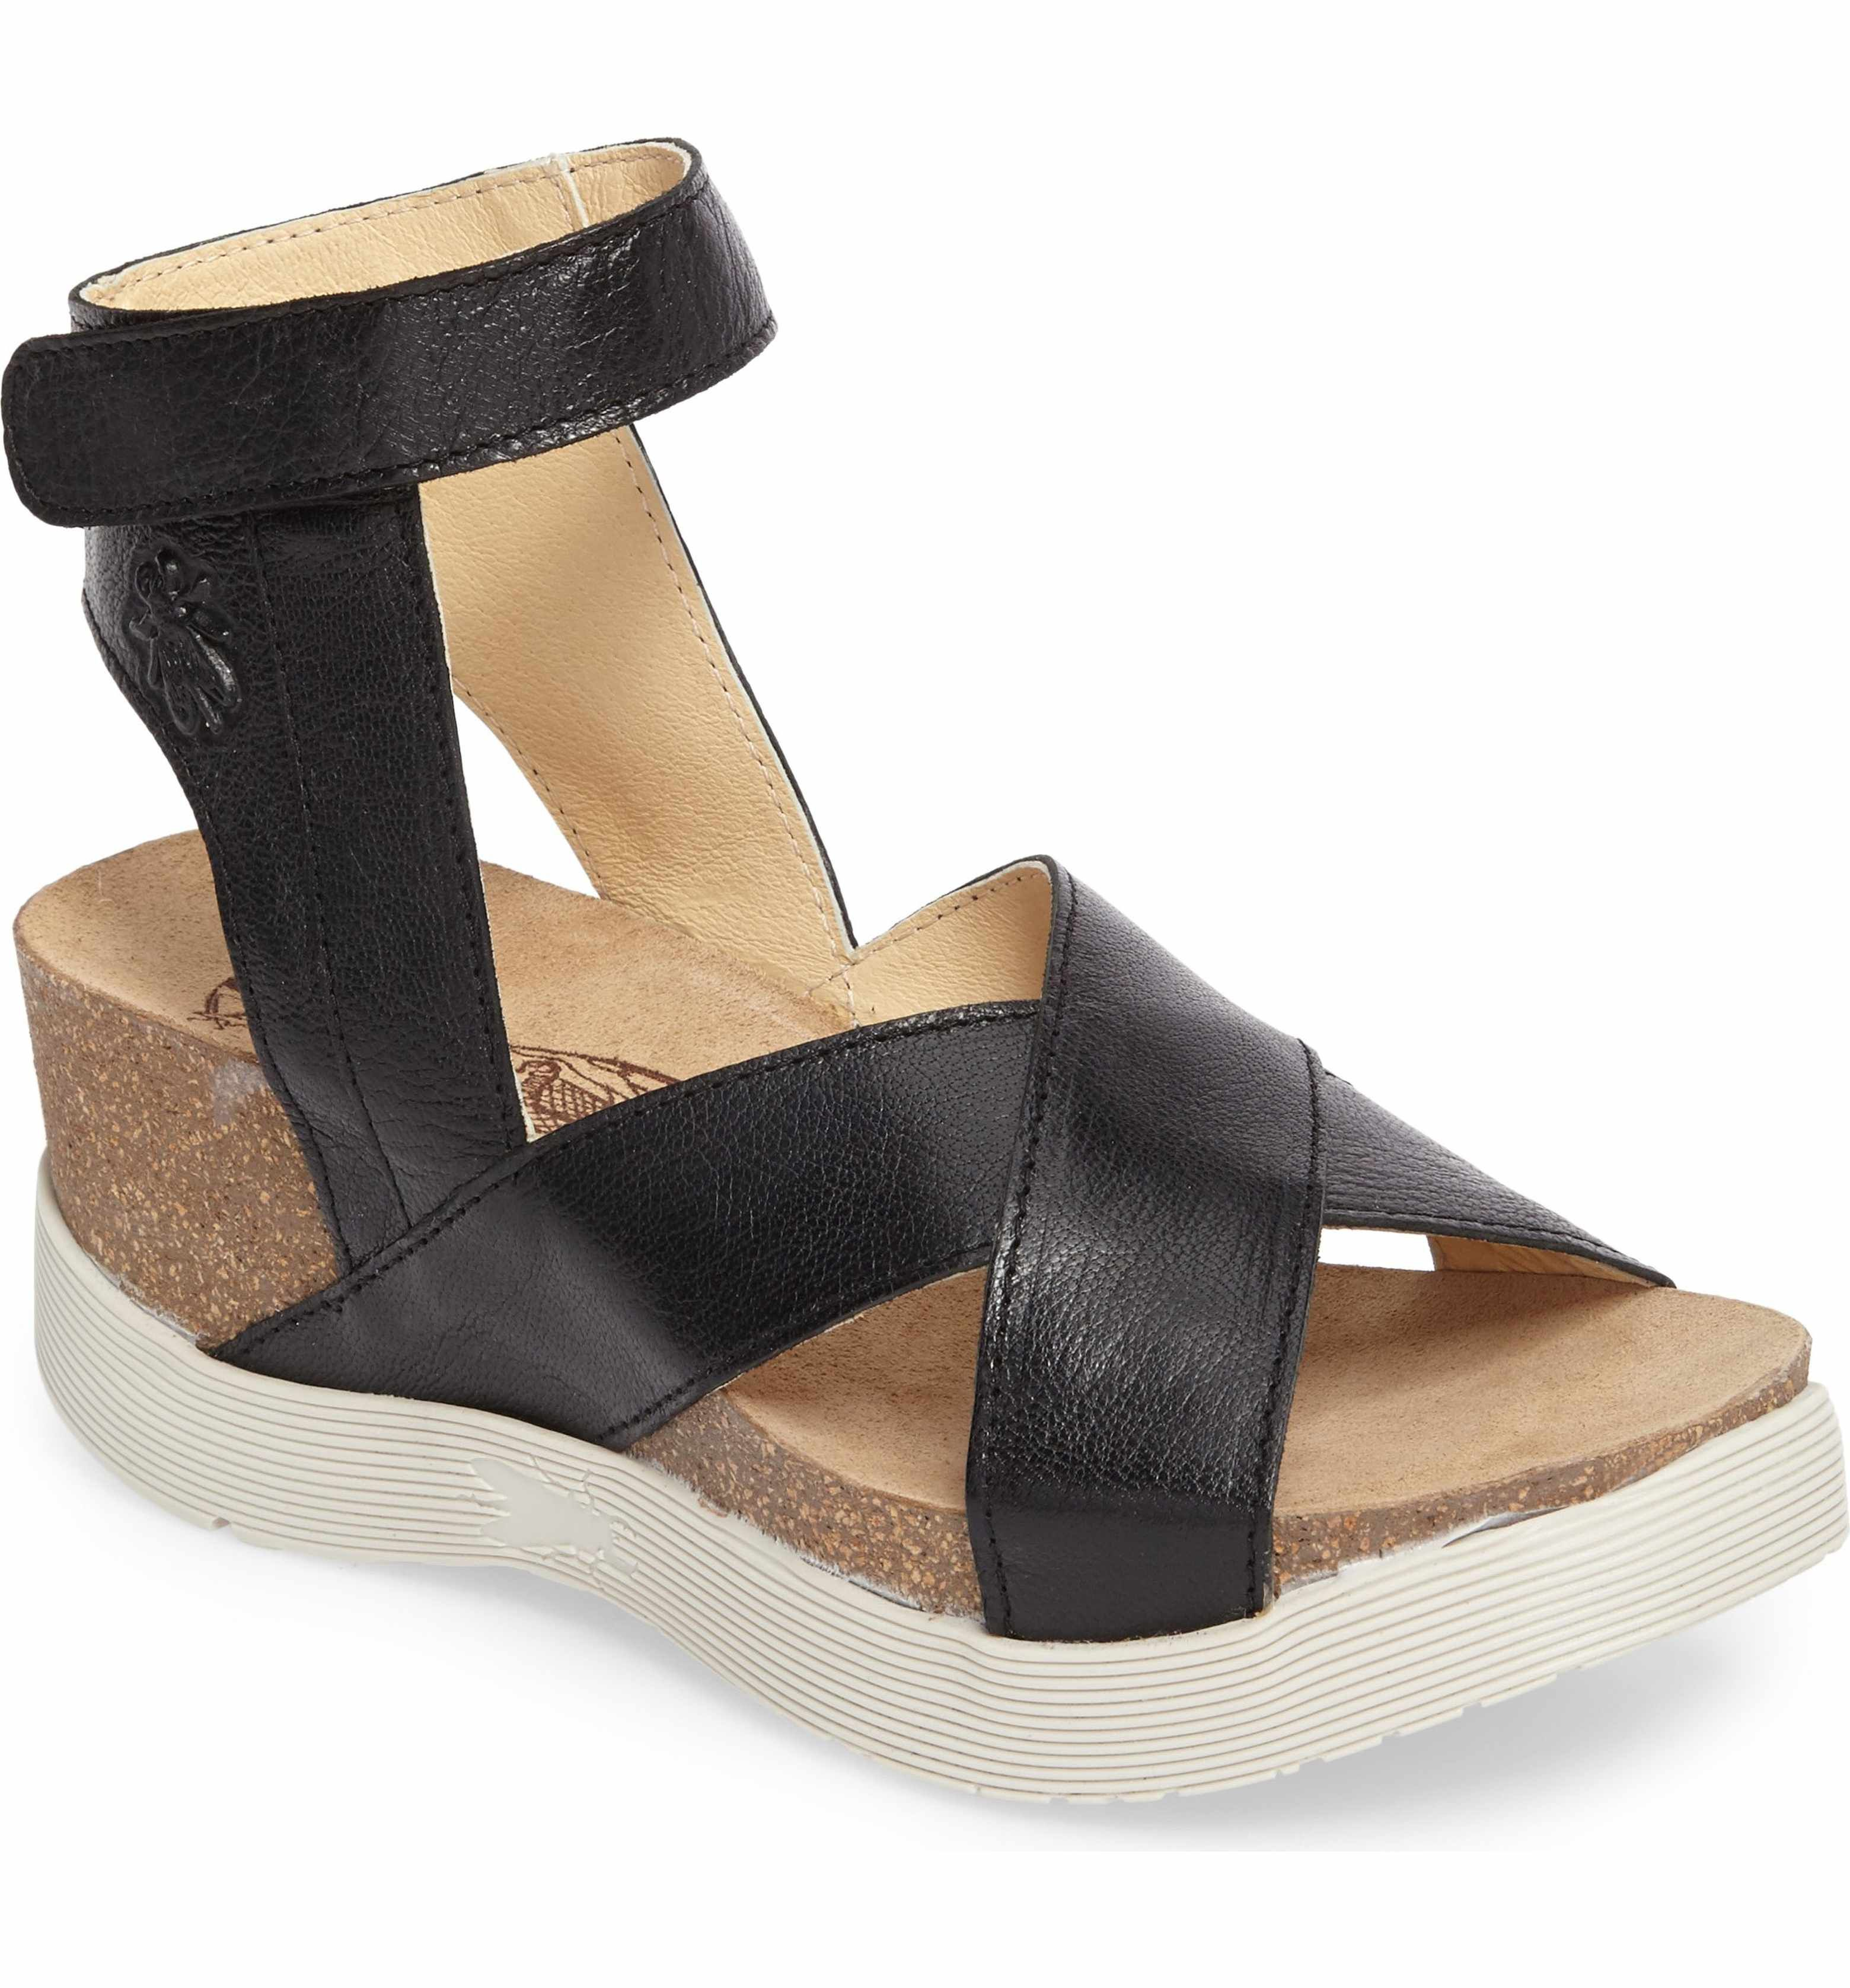 bbac60716f76 Fly London Weel Nubuck Leather Platform Sandal (Women)